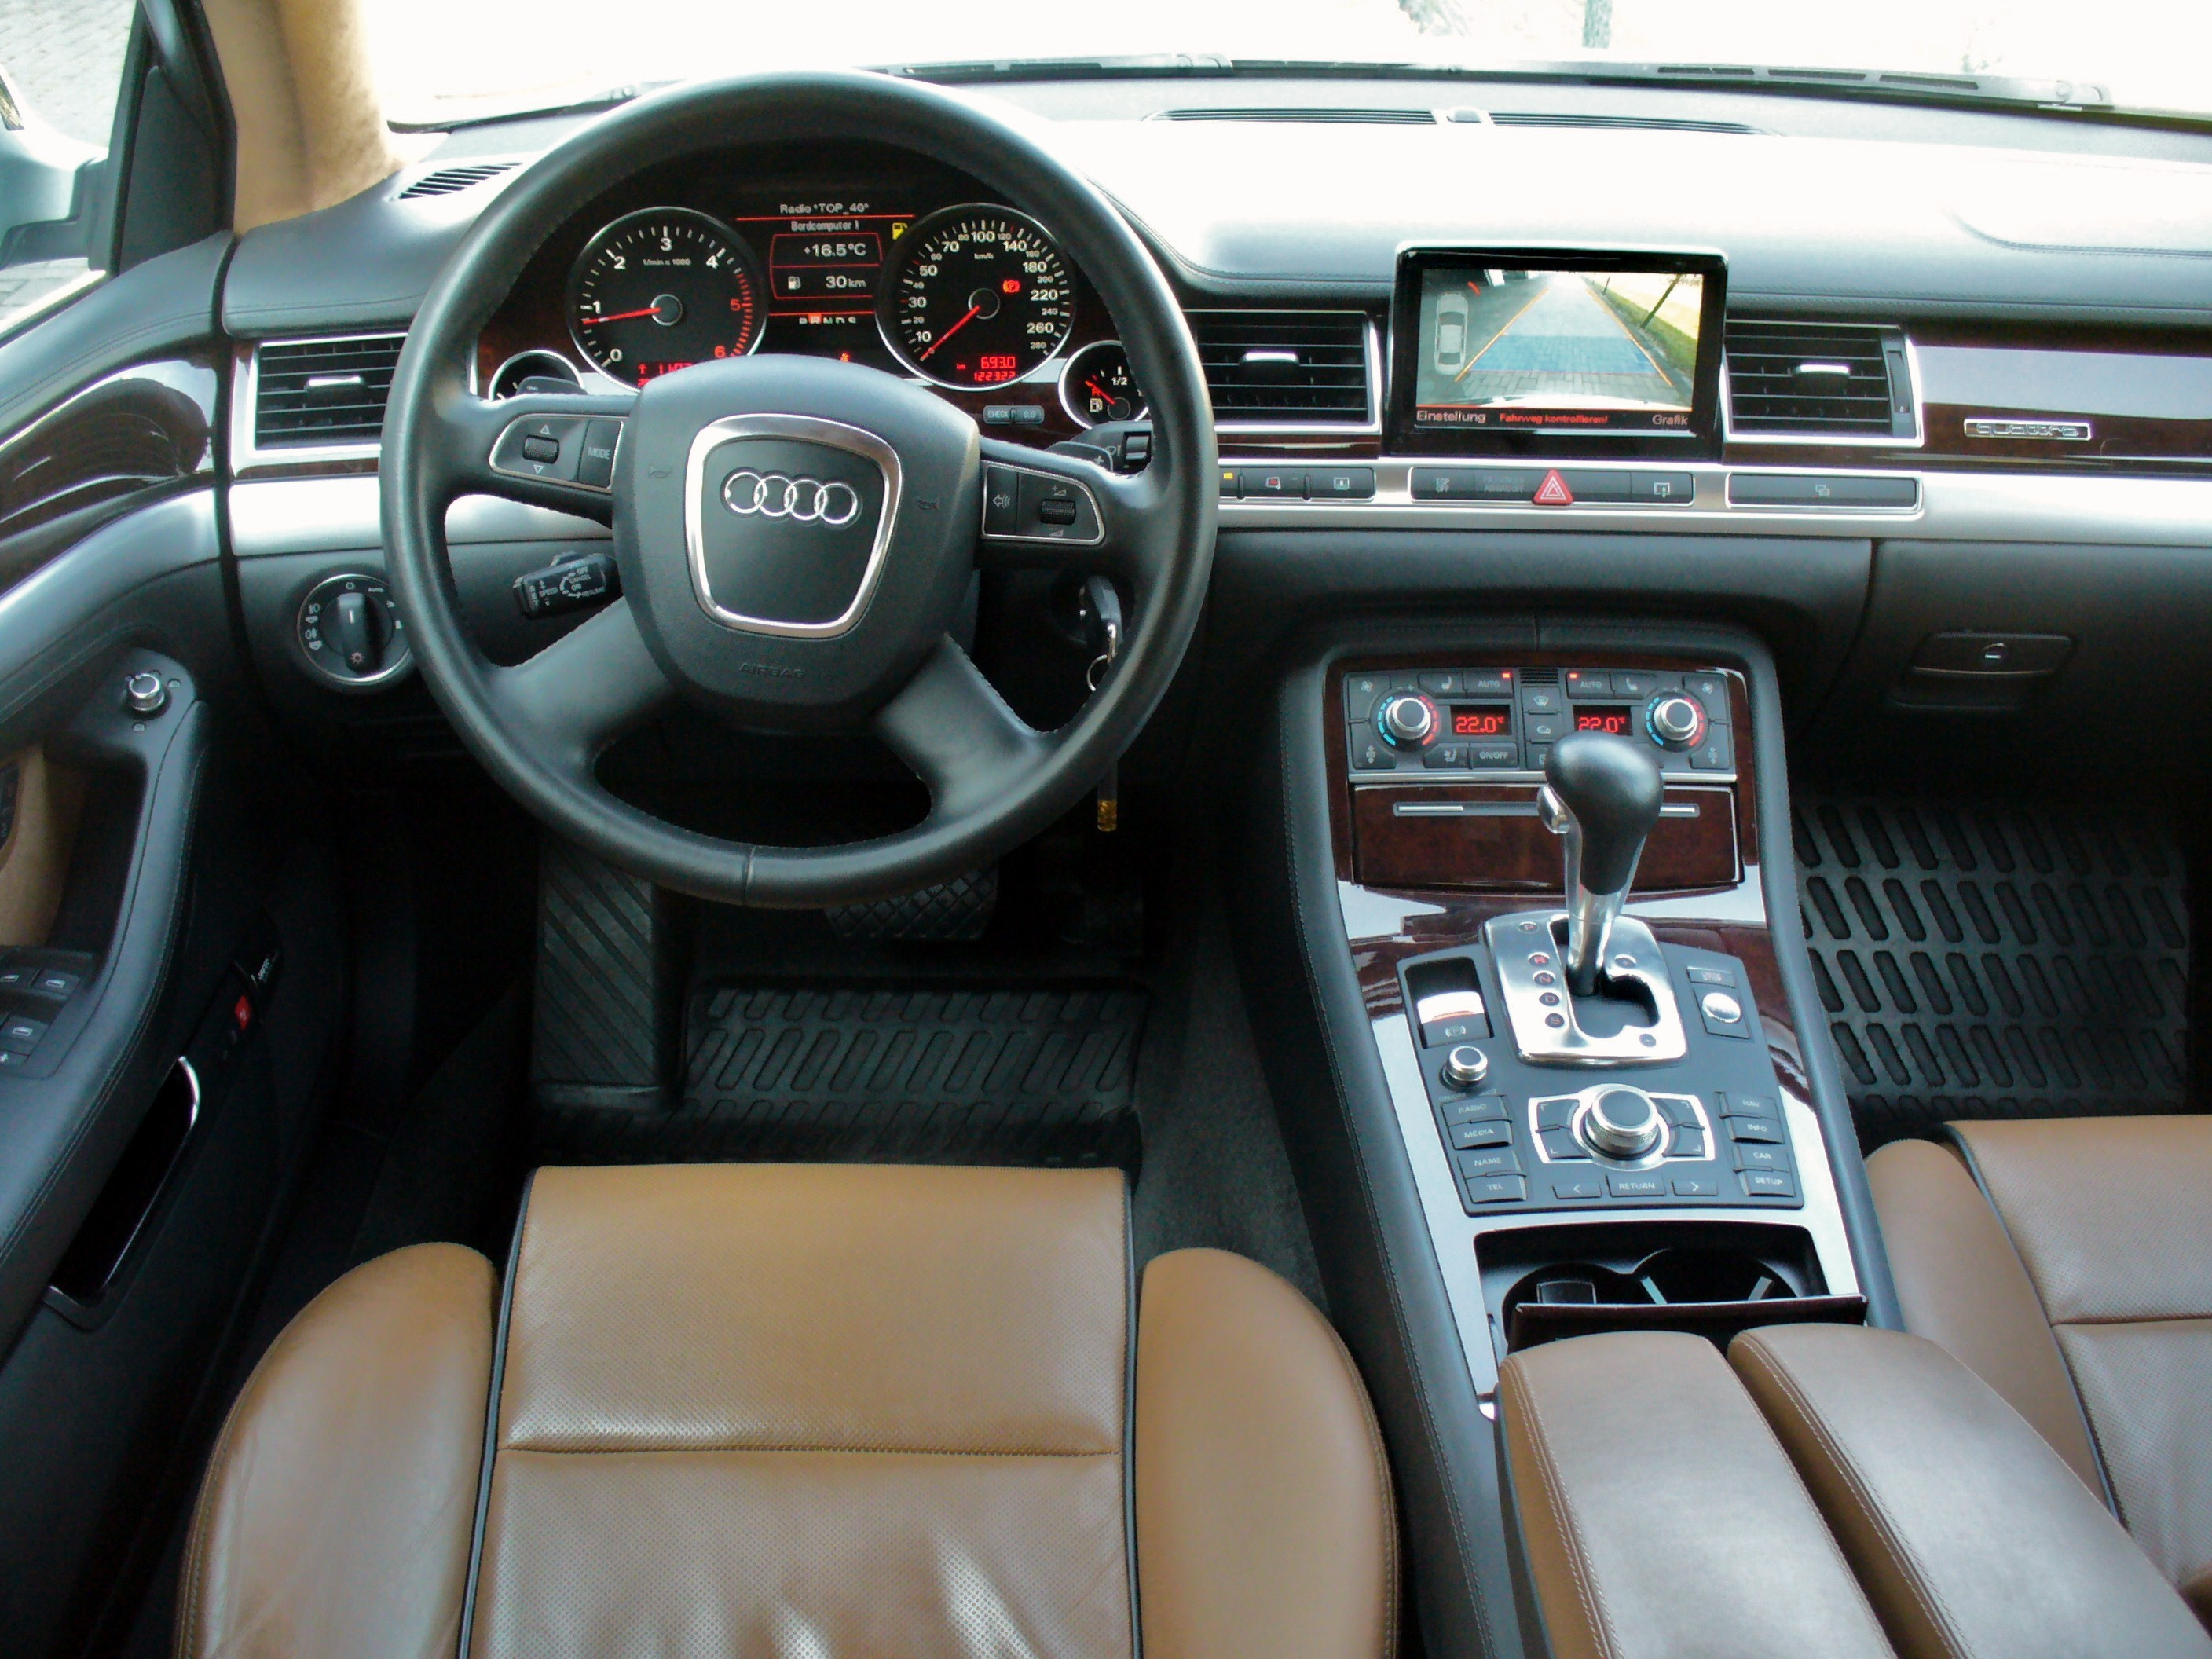 audi a8 4 2 tdi technical details history photos on. Black Bedroom Furniture Sets. Home Design Ideas